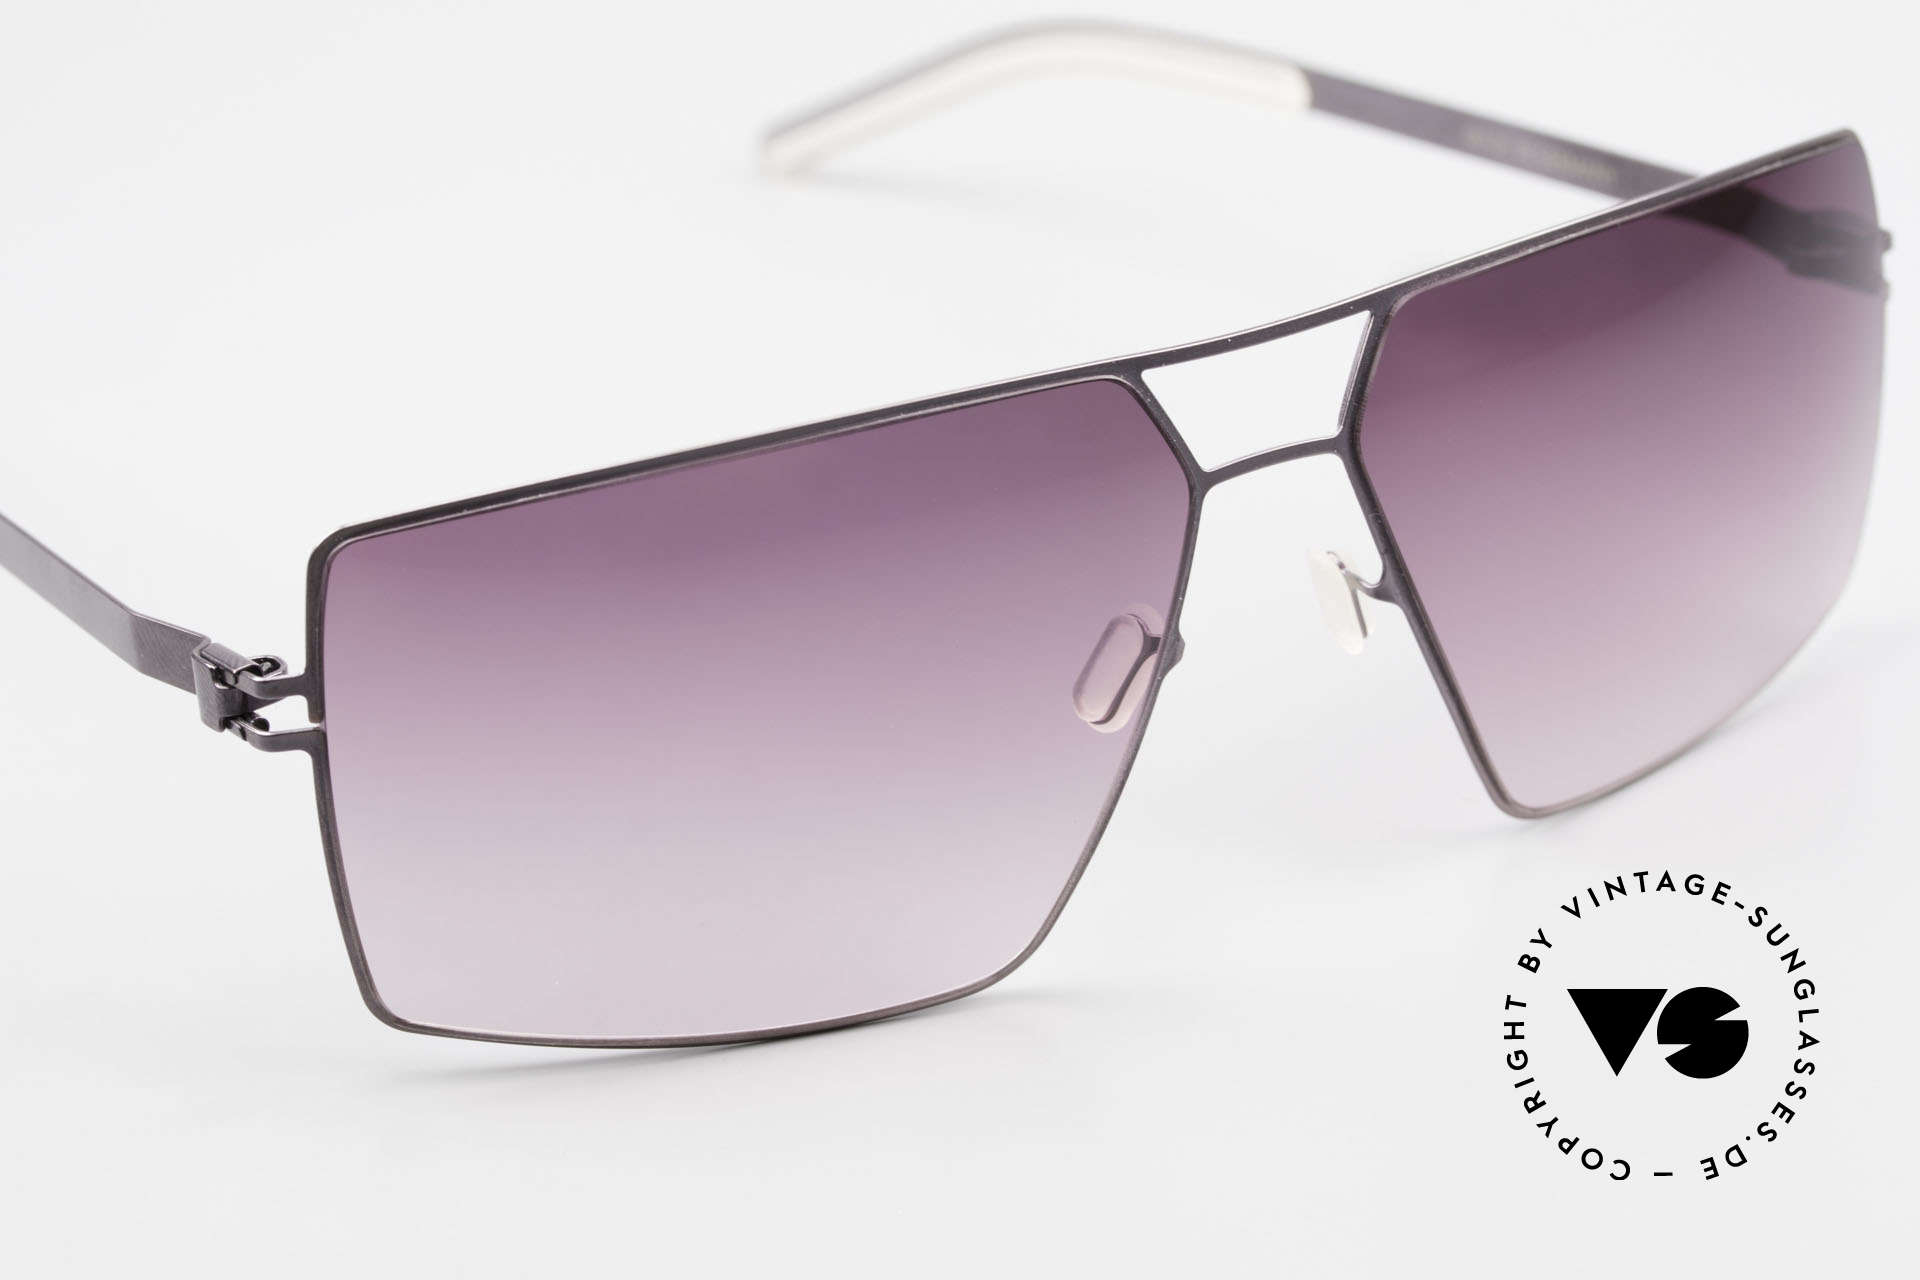 Mykita Viktor Designer Sunglasses Square, top-notch quality, made in Germany (Berlin-Kreuzberg), Made for Men